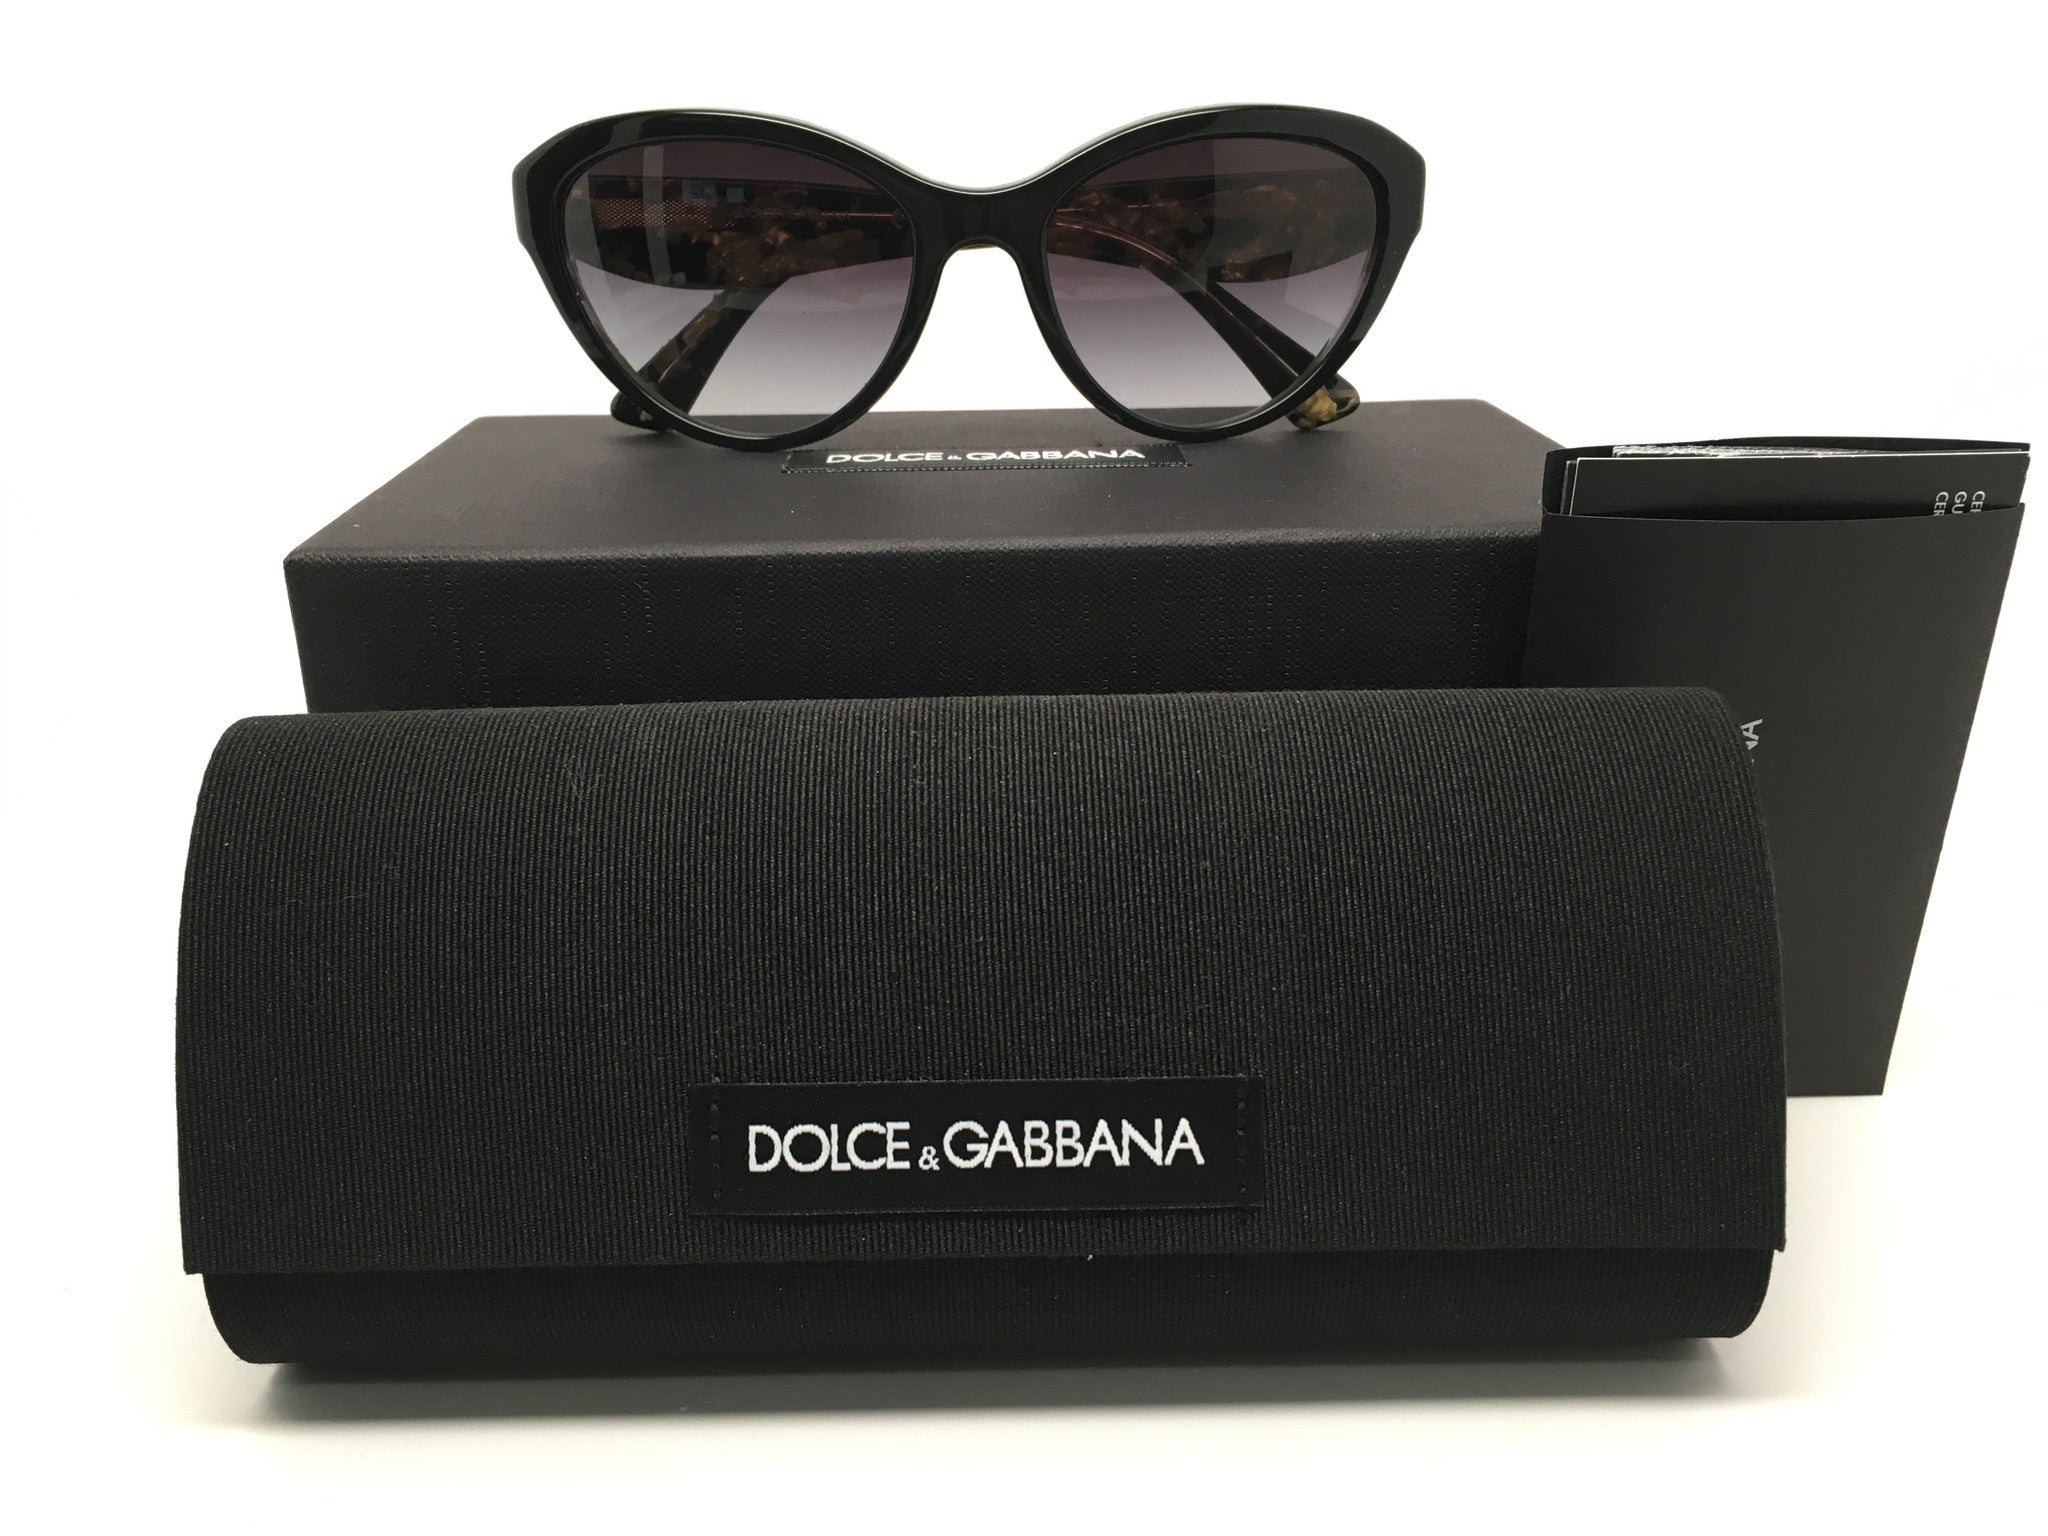 NEW DOLCE & GABBANA GOLD LEAF SUNGLASSES